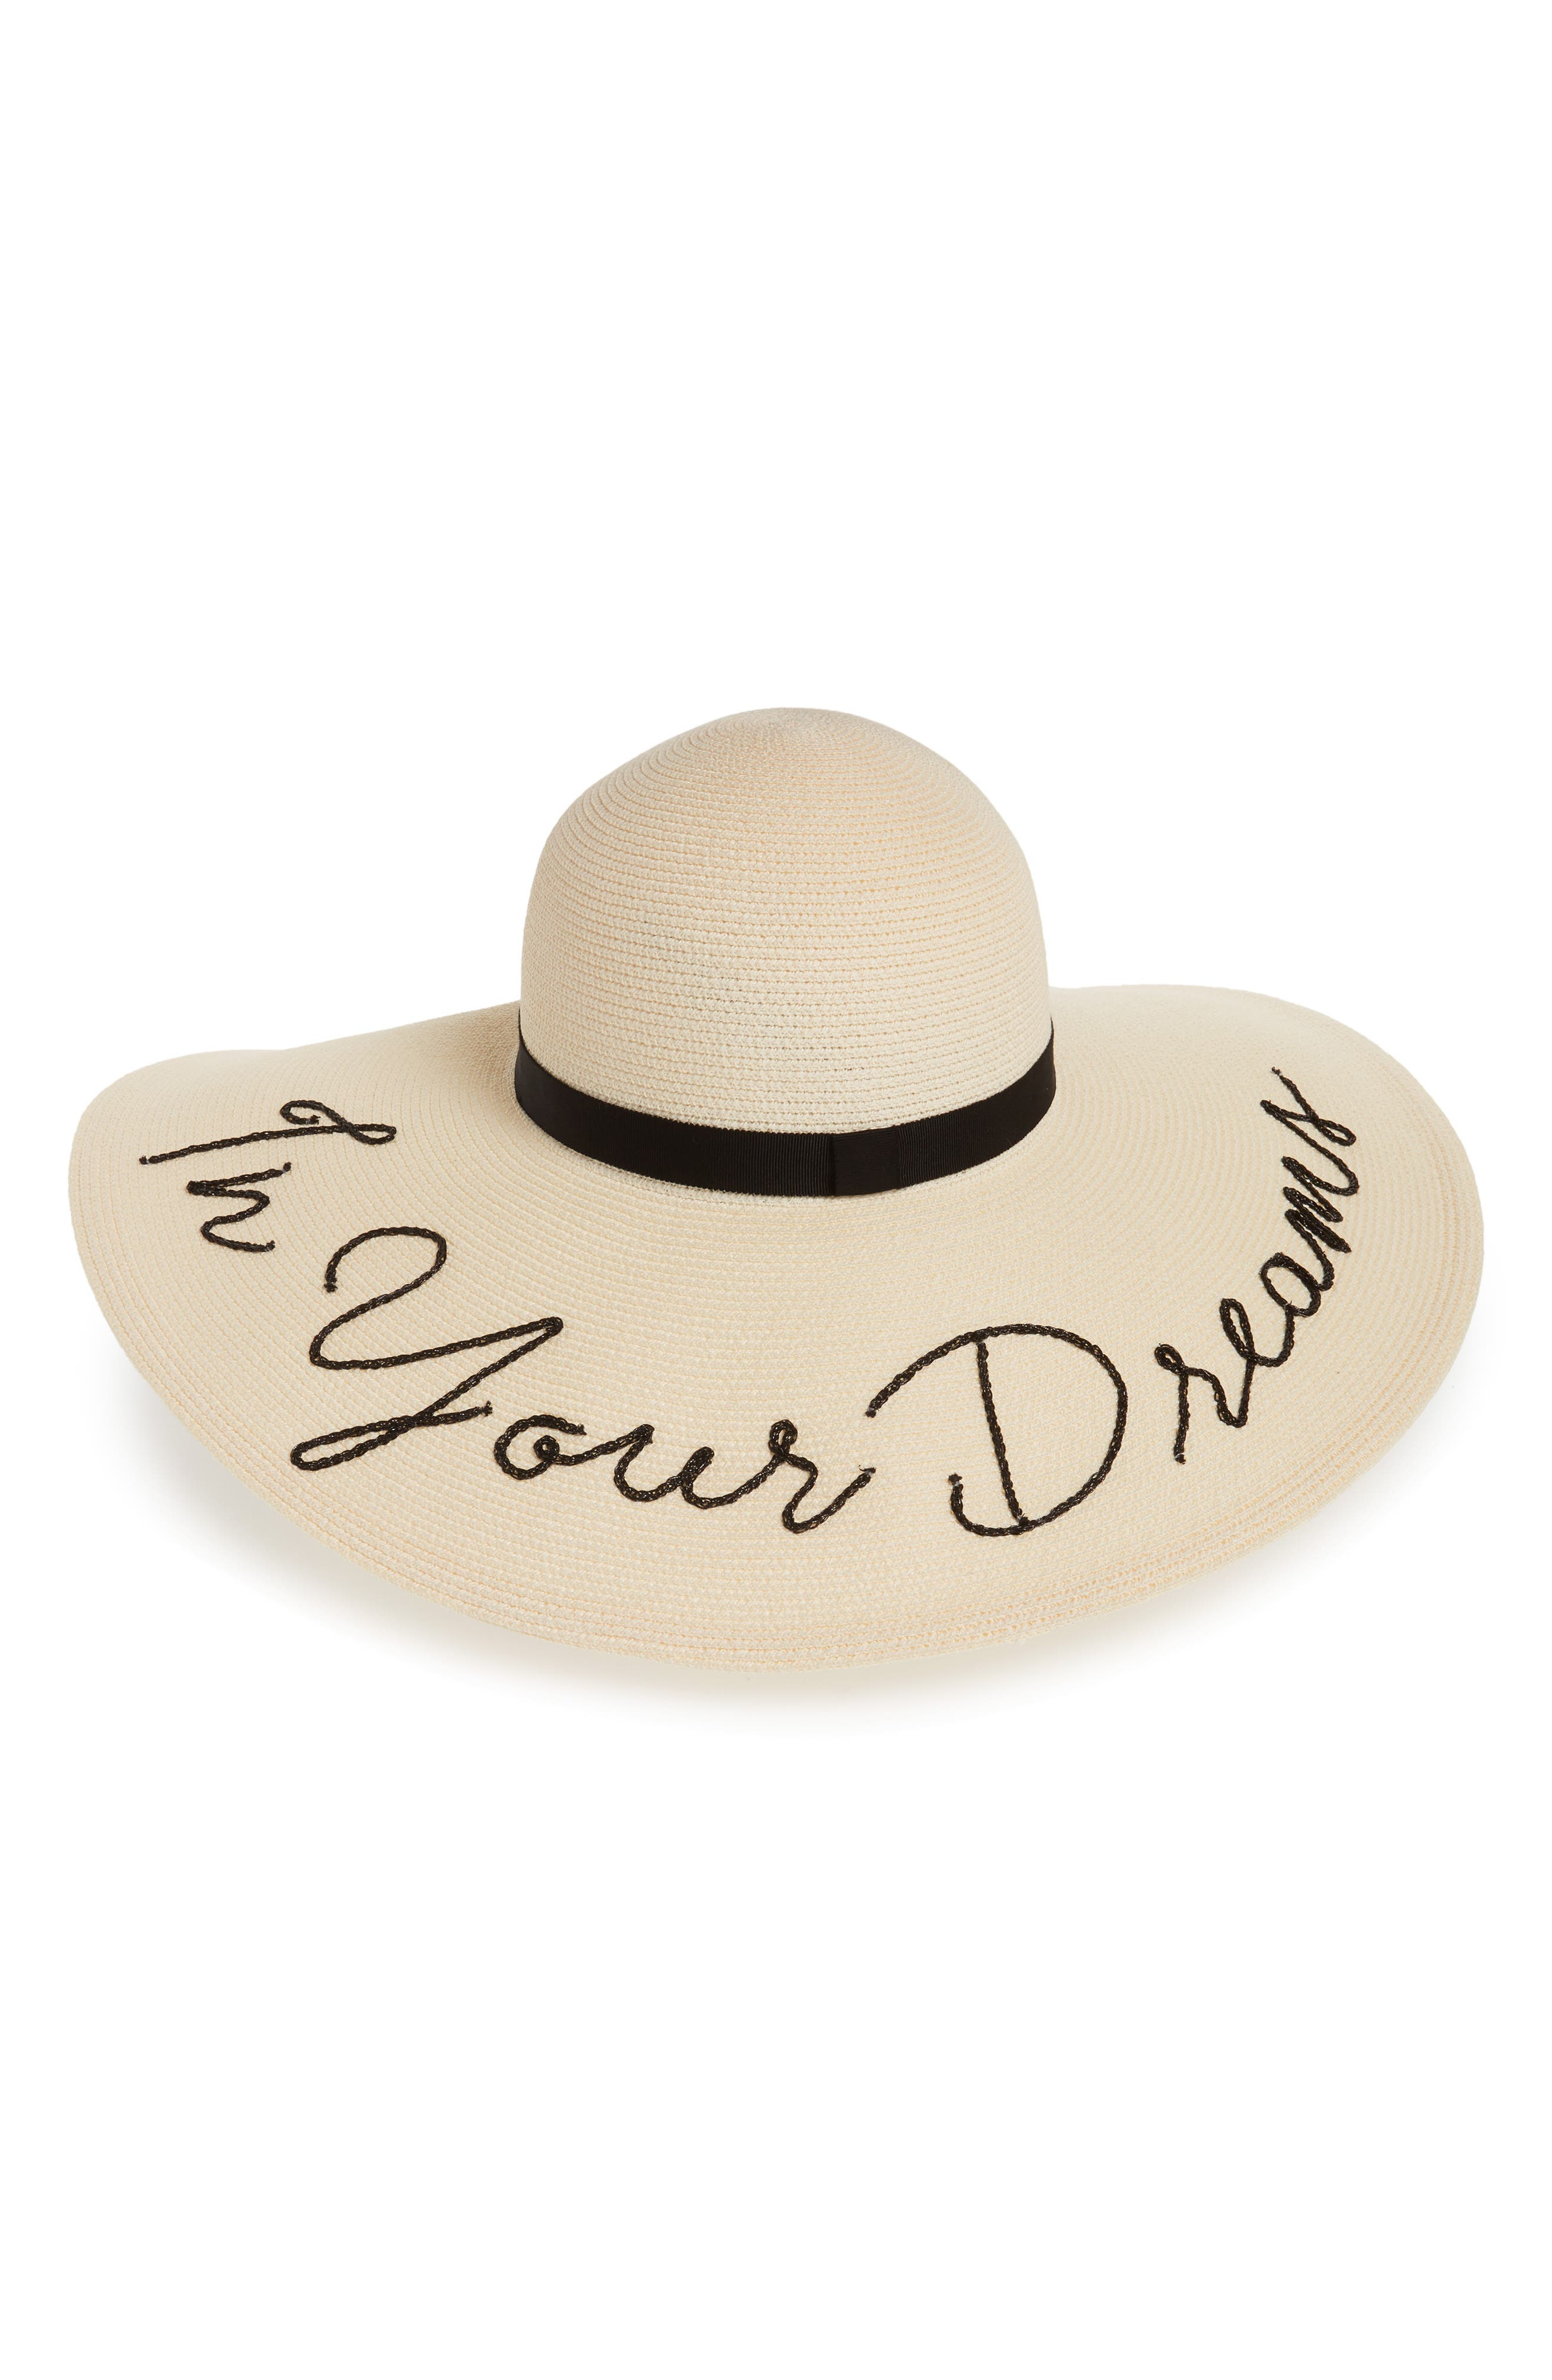 Bunny In Your Dreams Sun Hat,                             Main thumbnail 1, color,                             Ivory